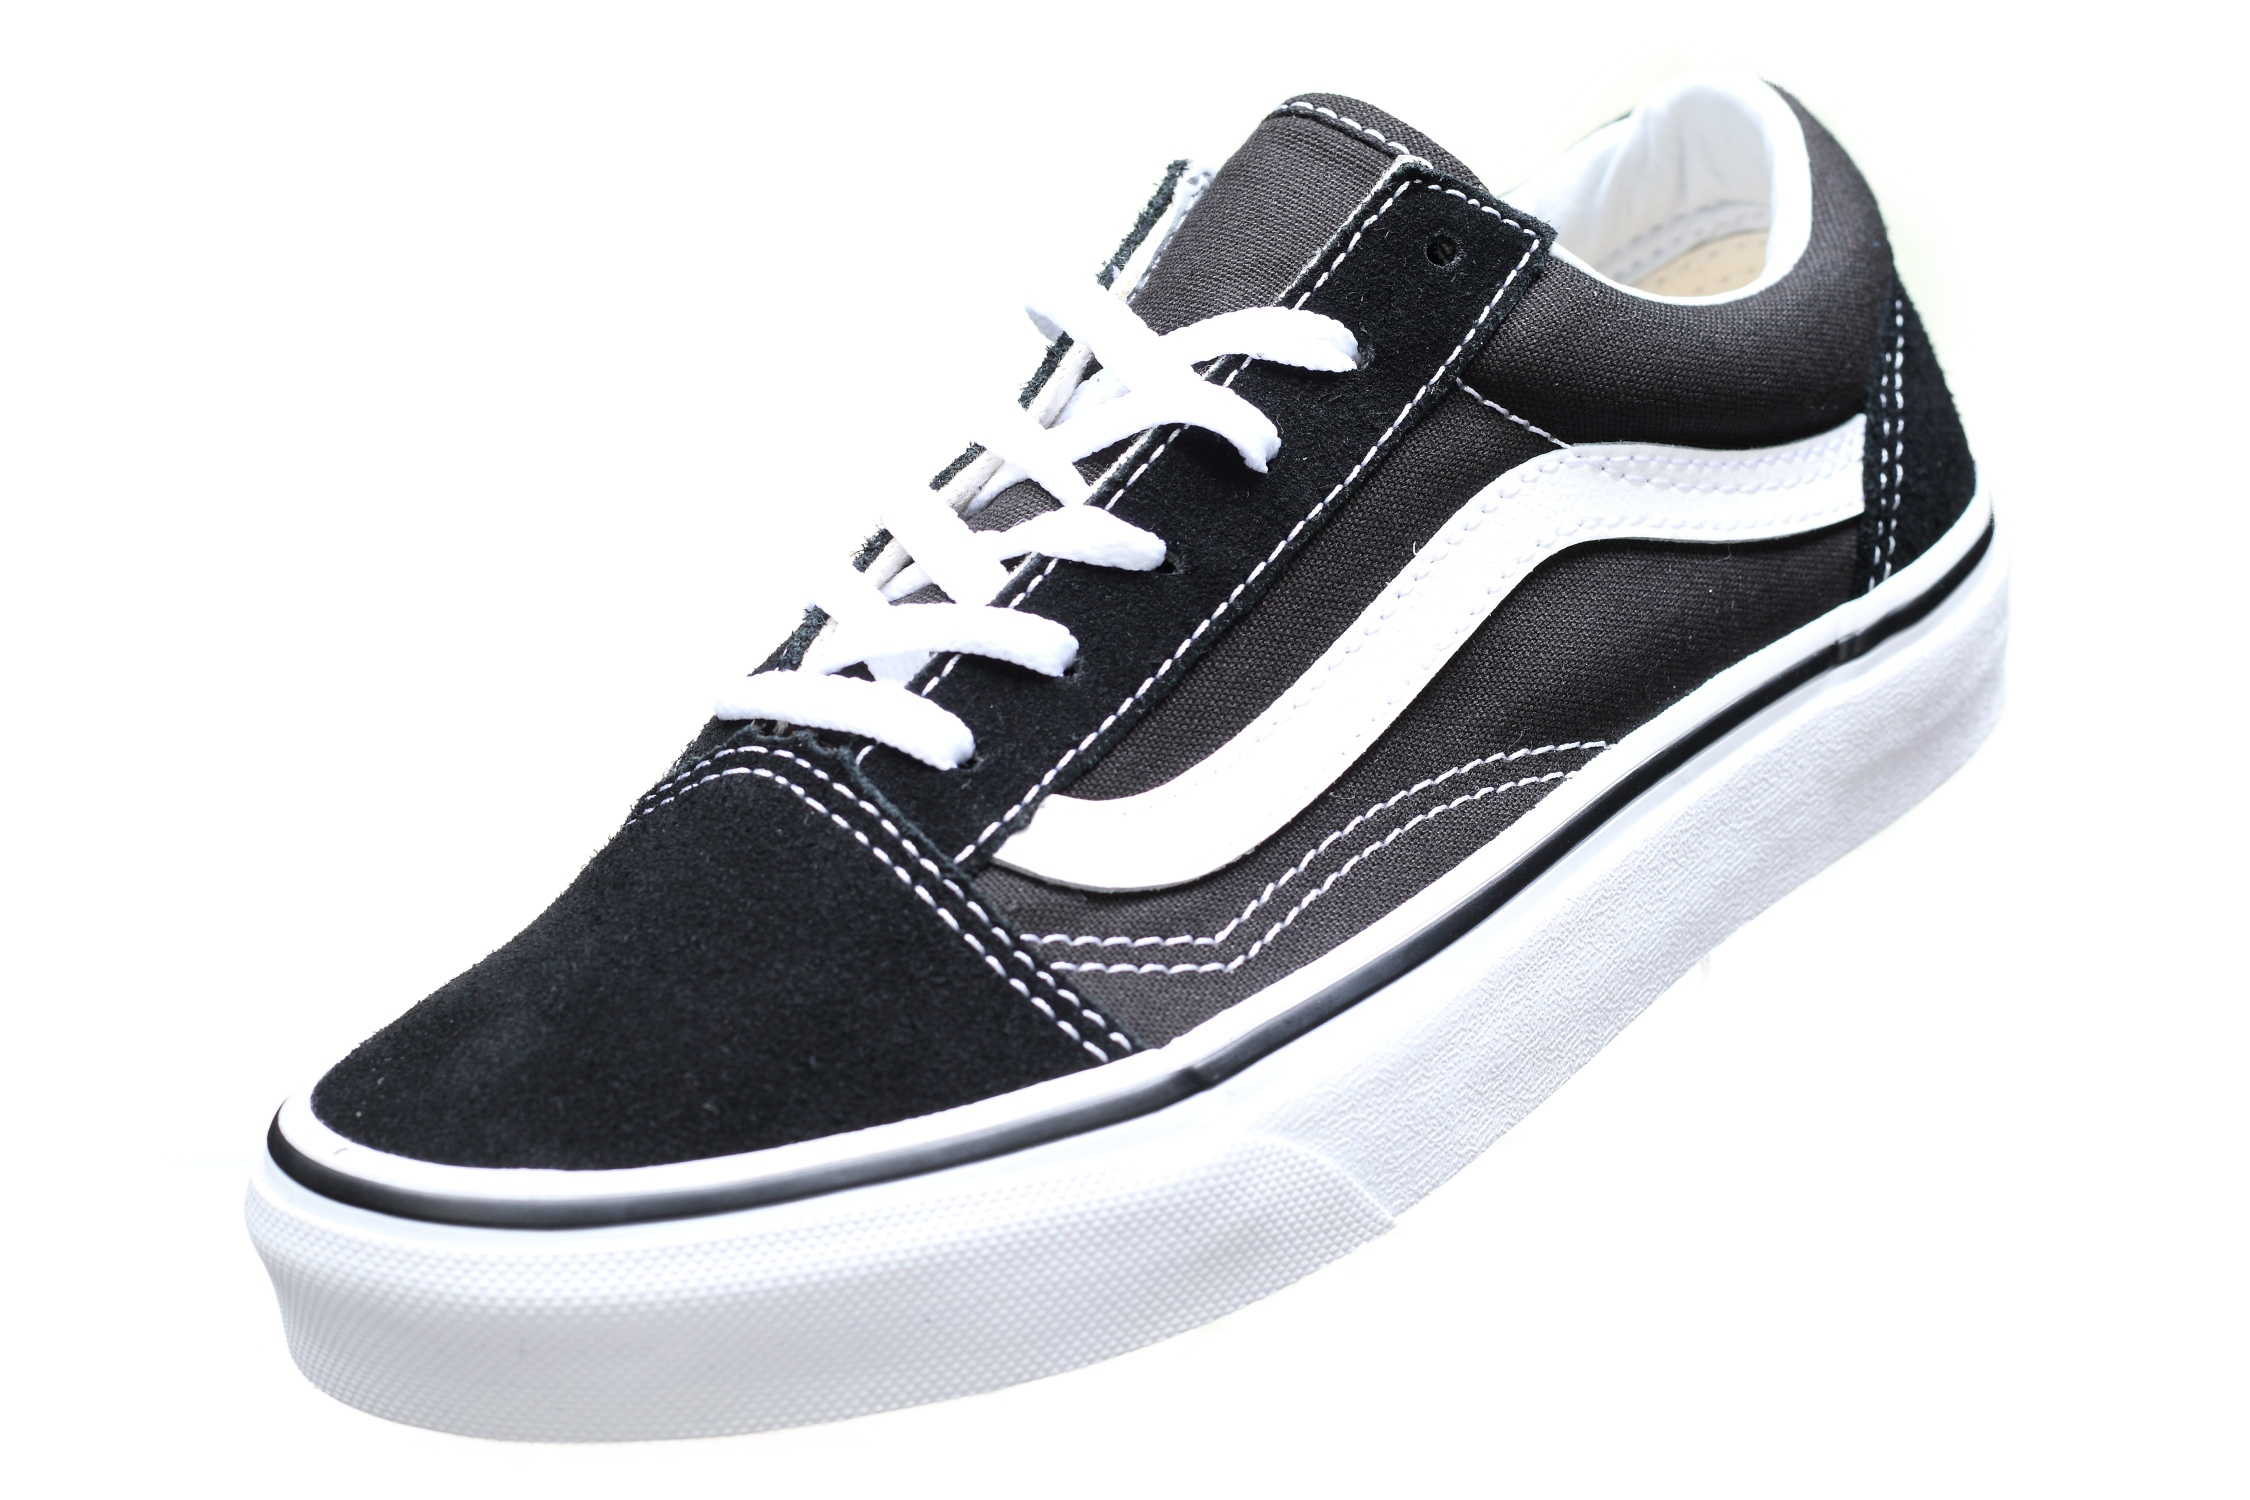 http://www.leadermode.com/154195/vans-old-skool-vw9t6bt-black-white.jpg